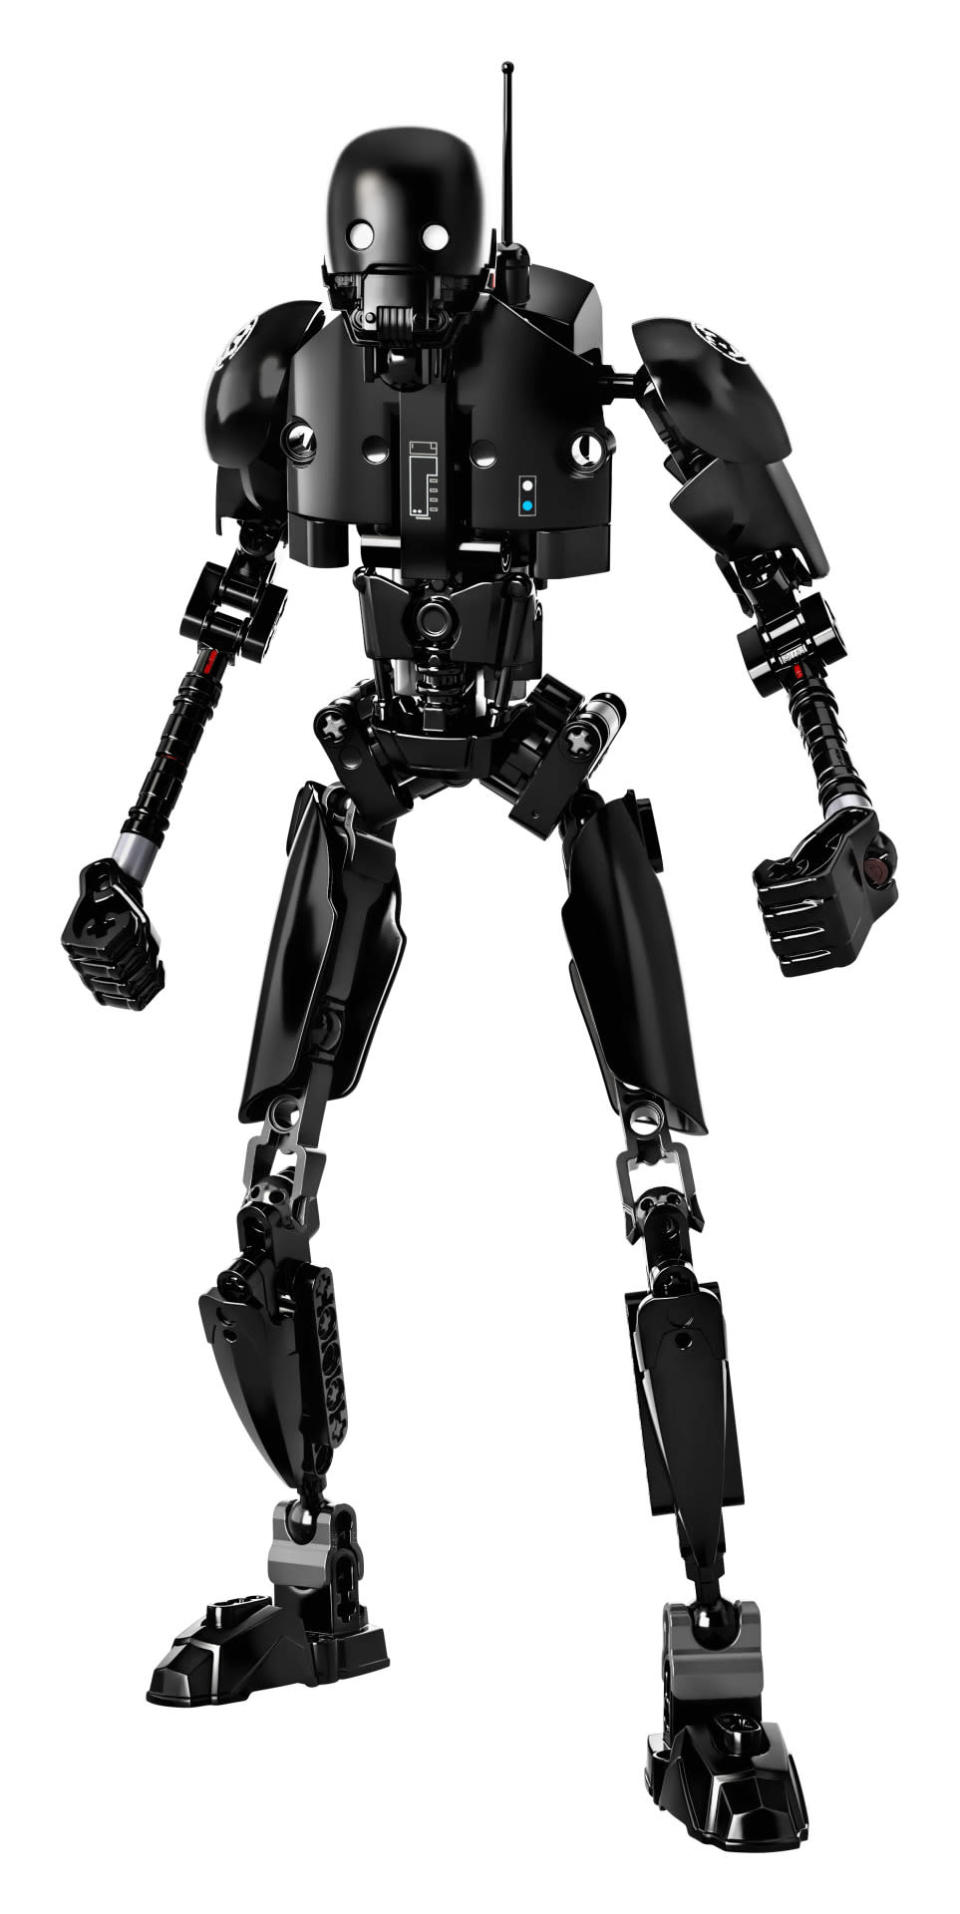 <p>Cassian Andor's reprogrammed Imperial security droid features arm-chopping action. You'll need to provide your own Alan Tudyk-esque quips while dispatching foes. ($24.99)</p>